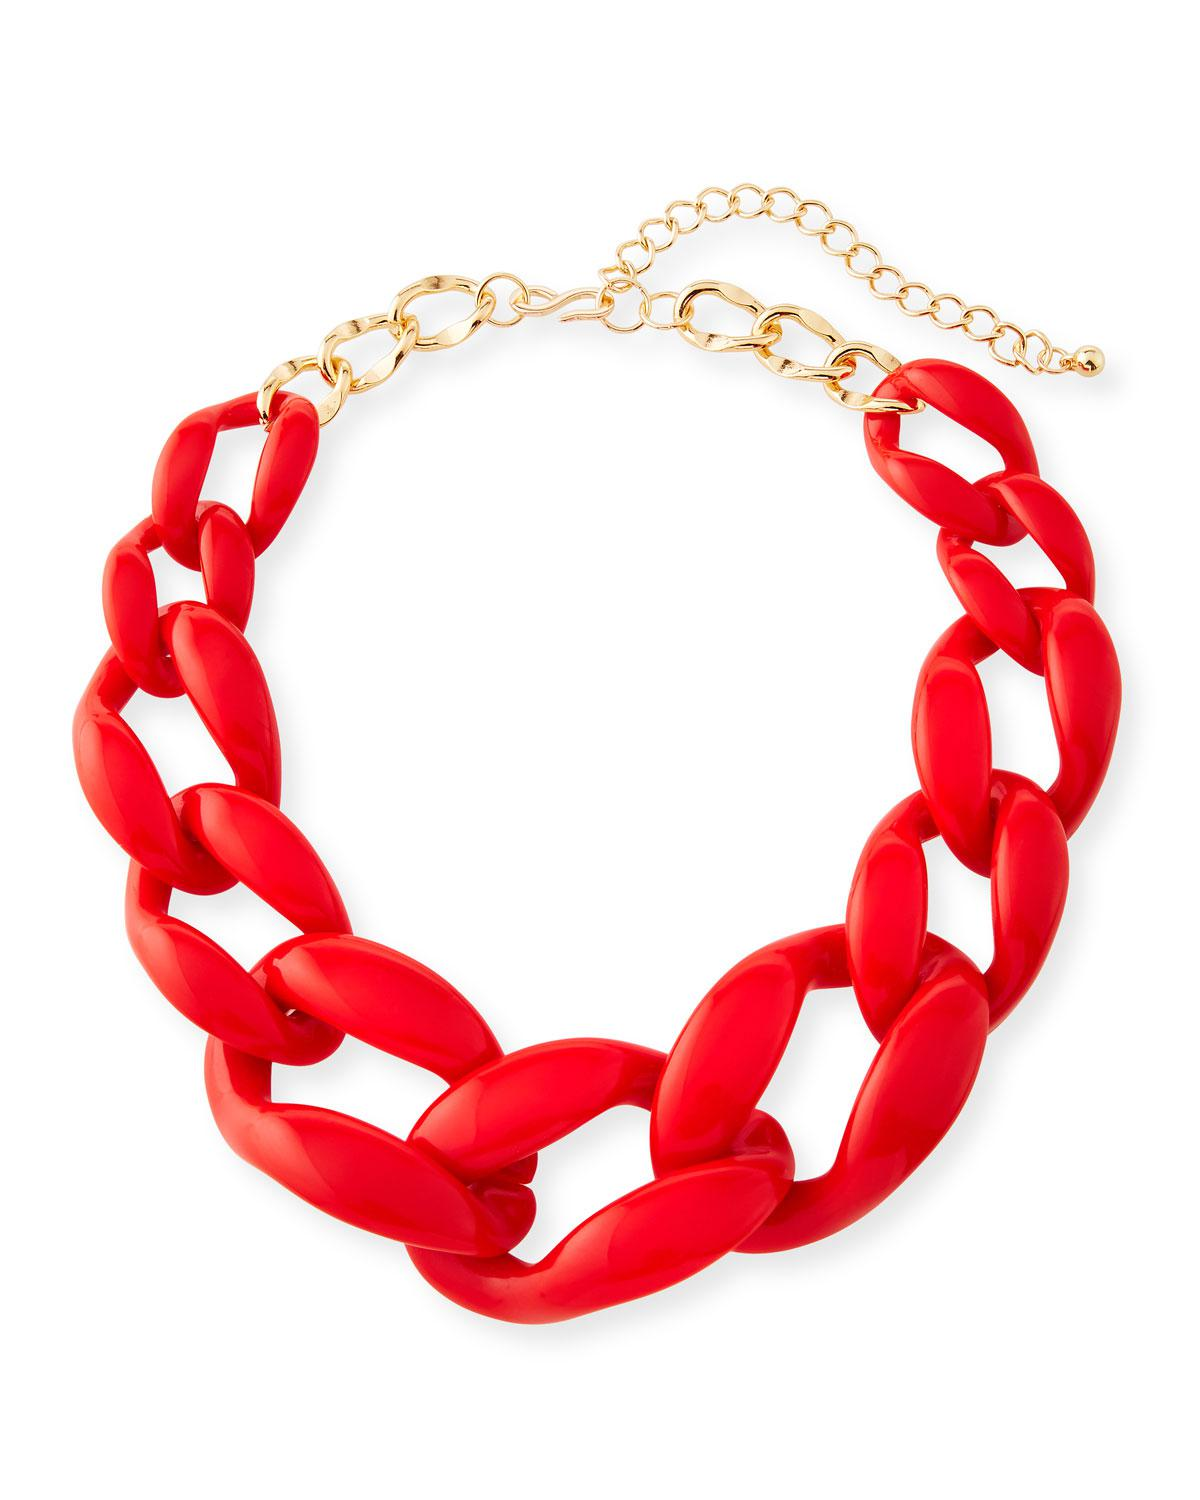 Kenneth Jay Lane Graduated Resin Link Necklace, Red